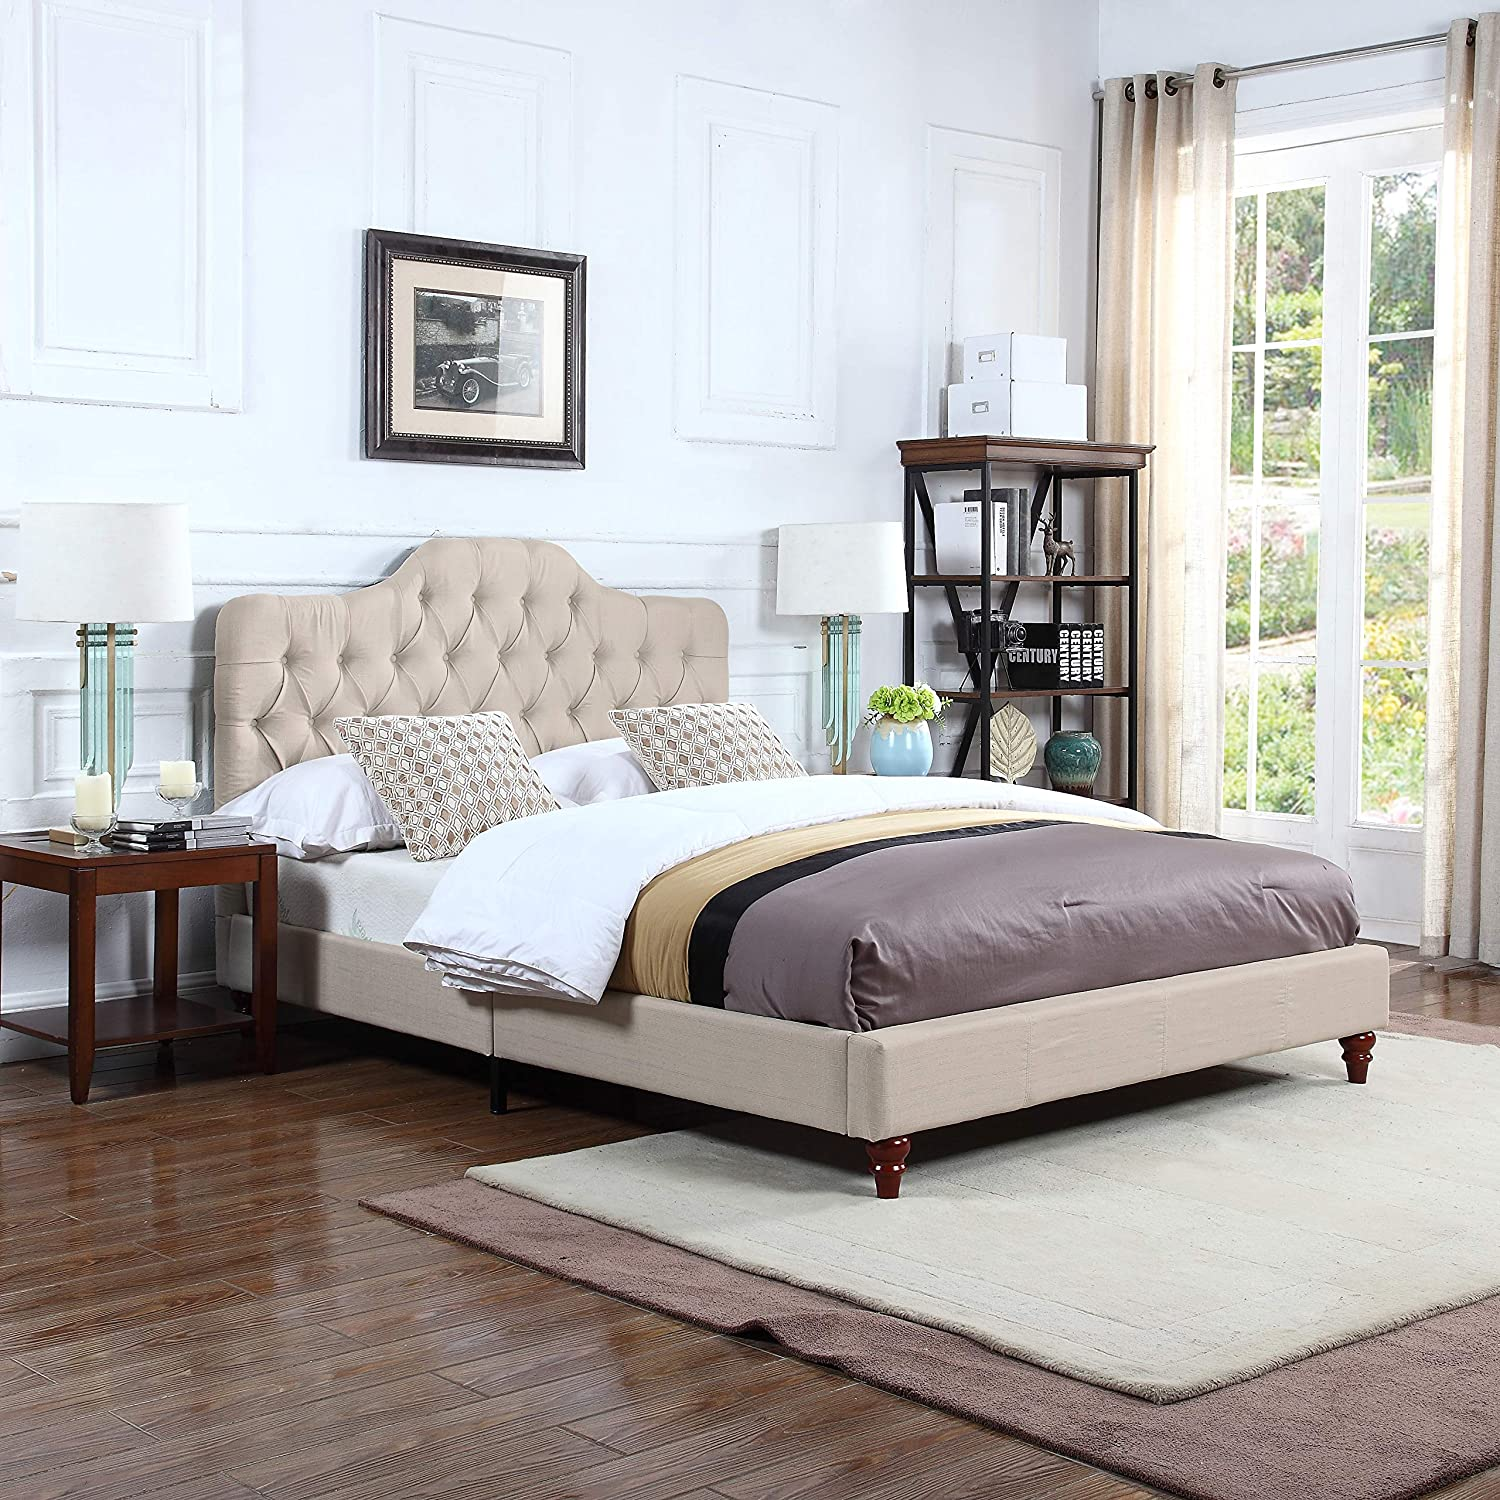 Divano Roma Furniture Classic Ivory Tufted Fabric Low Profile Bed Frame (Full)